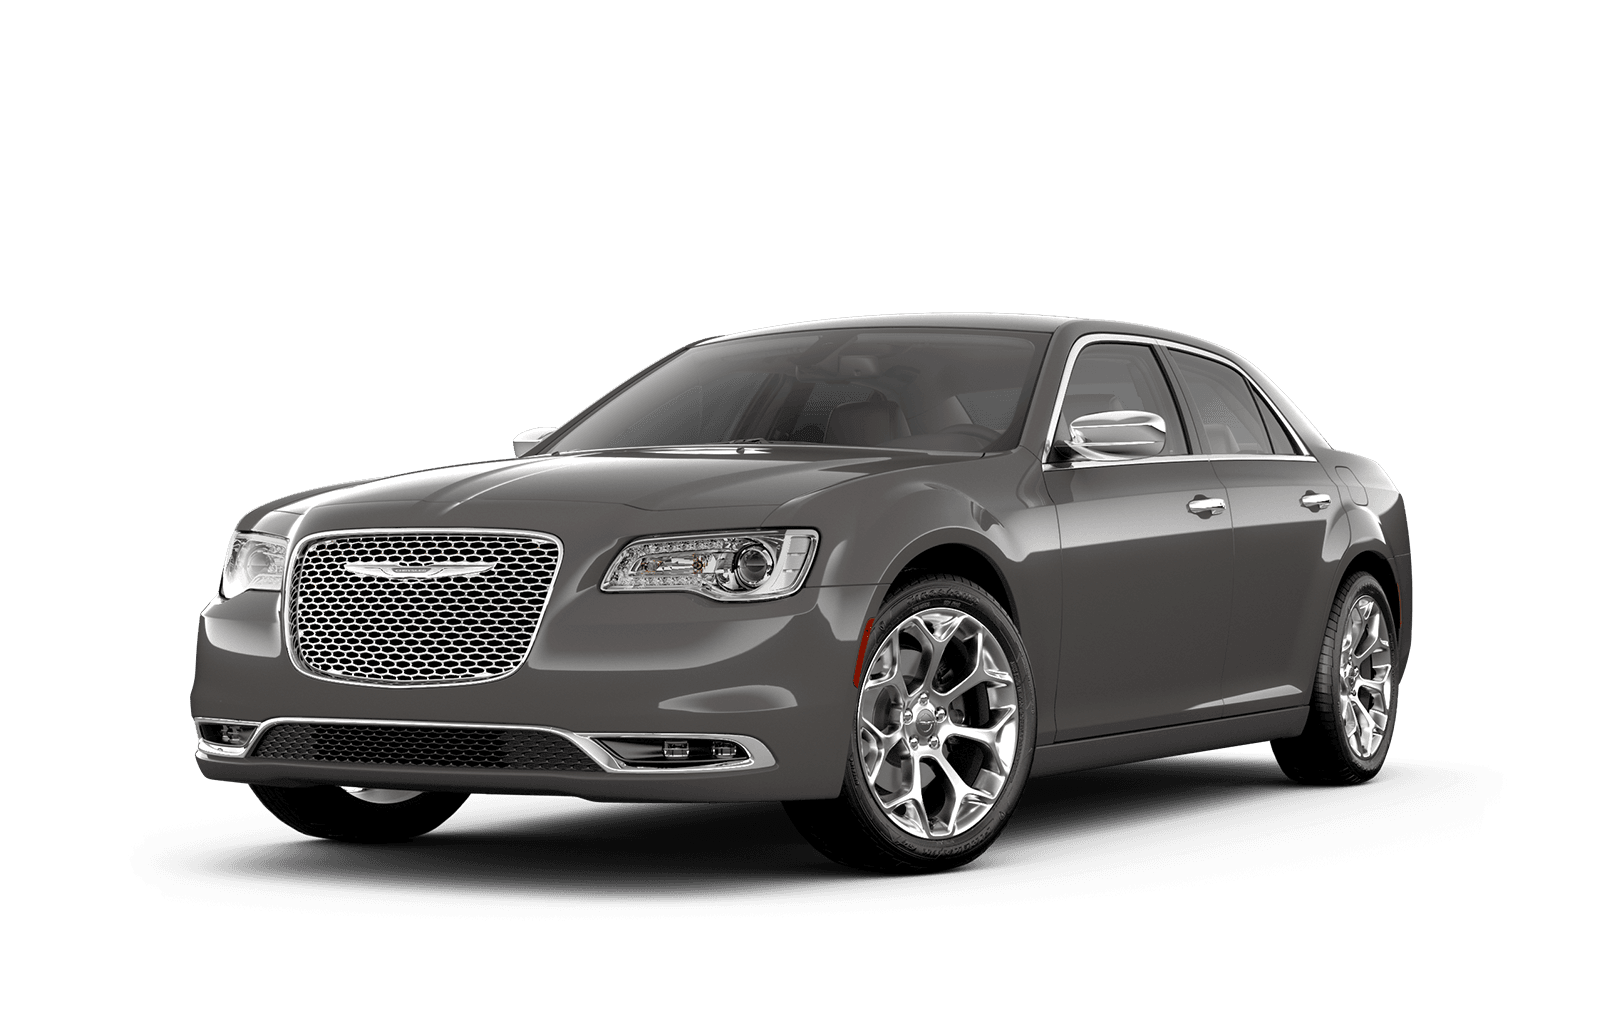 2019 Chrysler 300 Full View in Grey with Wheels